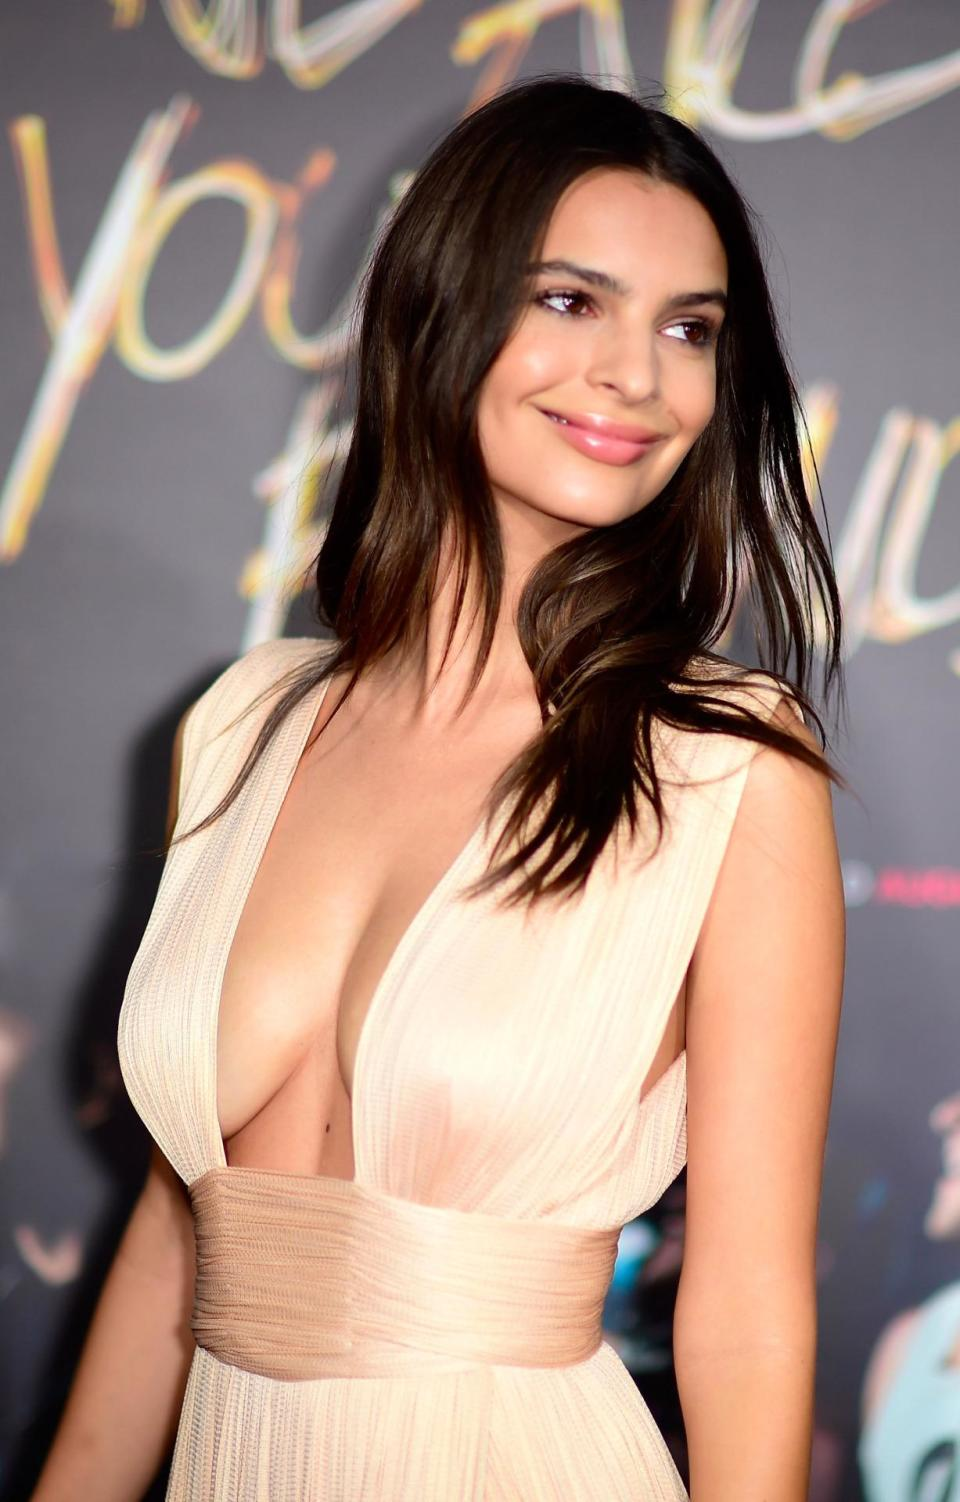 """HOLLYWOOD, CA - AUGUST 20: Actress Emily Ratajkowski arrives at the Premiere Of Warner Bros. Pictures' """"We Are Your Friends"""" at TCL Chinese Theatre on August 20, 2015 in Hollywood, California. (Photo by Frazer Harrison/Getty Images)"""